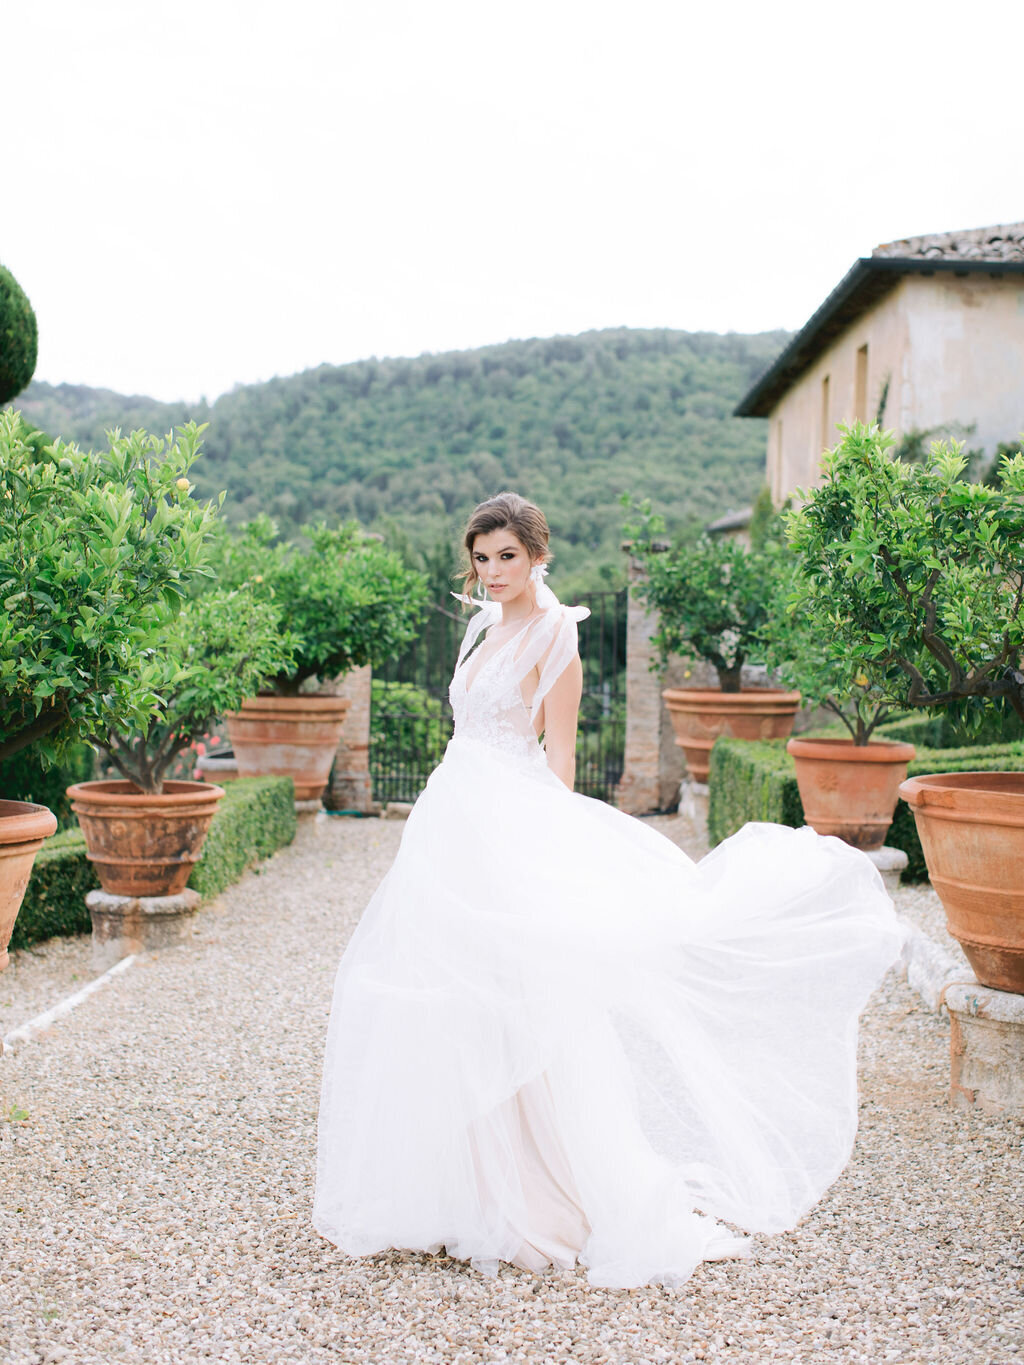 Trine_Juel_hair_and_makeupartist_wedding_Italy_Castello_Di_CelsaQuicksallPhotography_1049